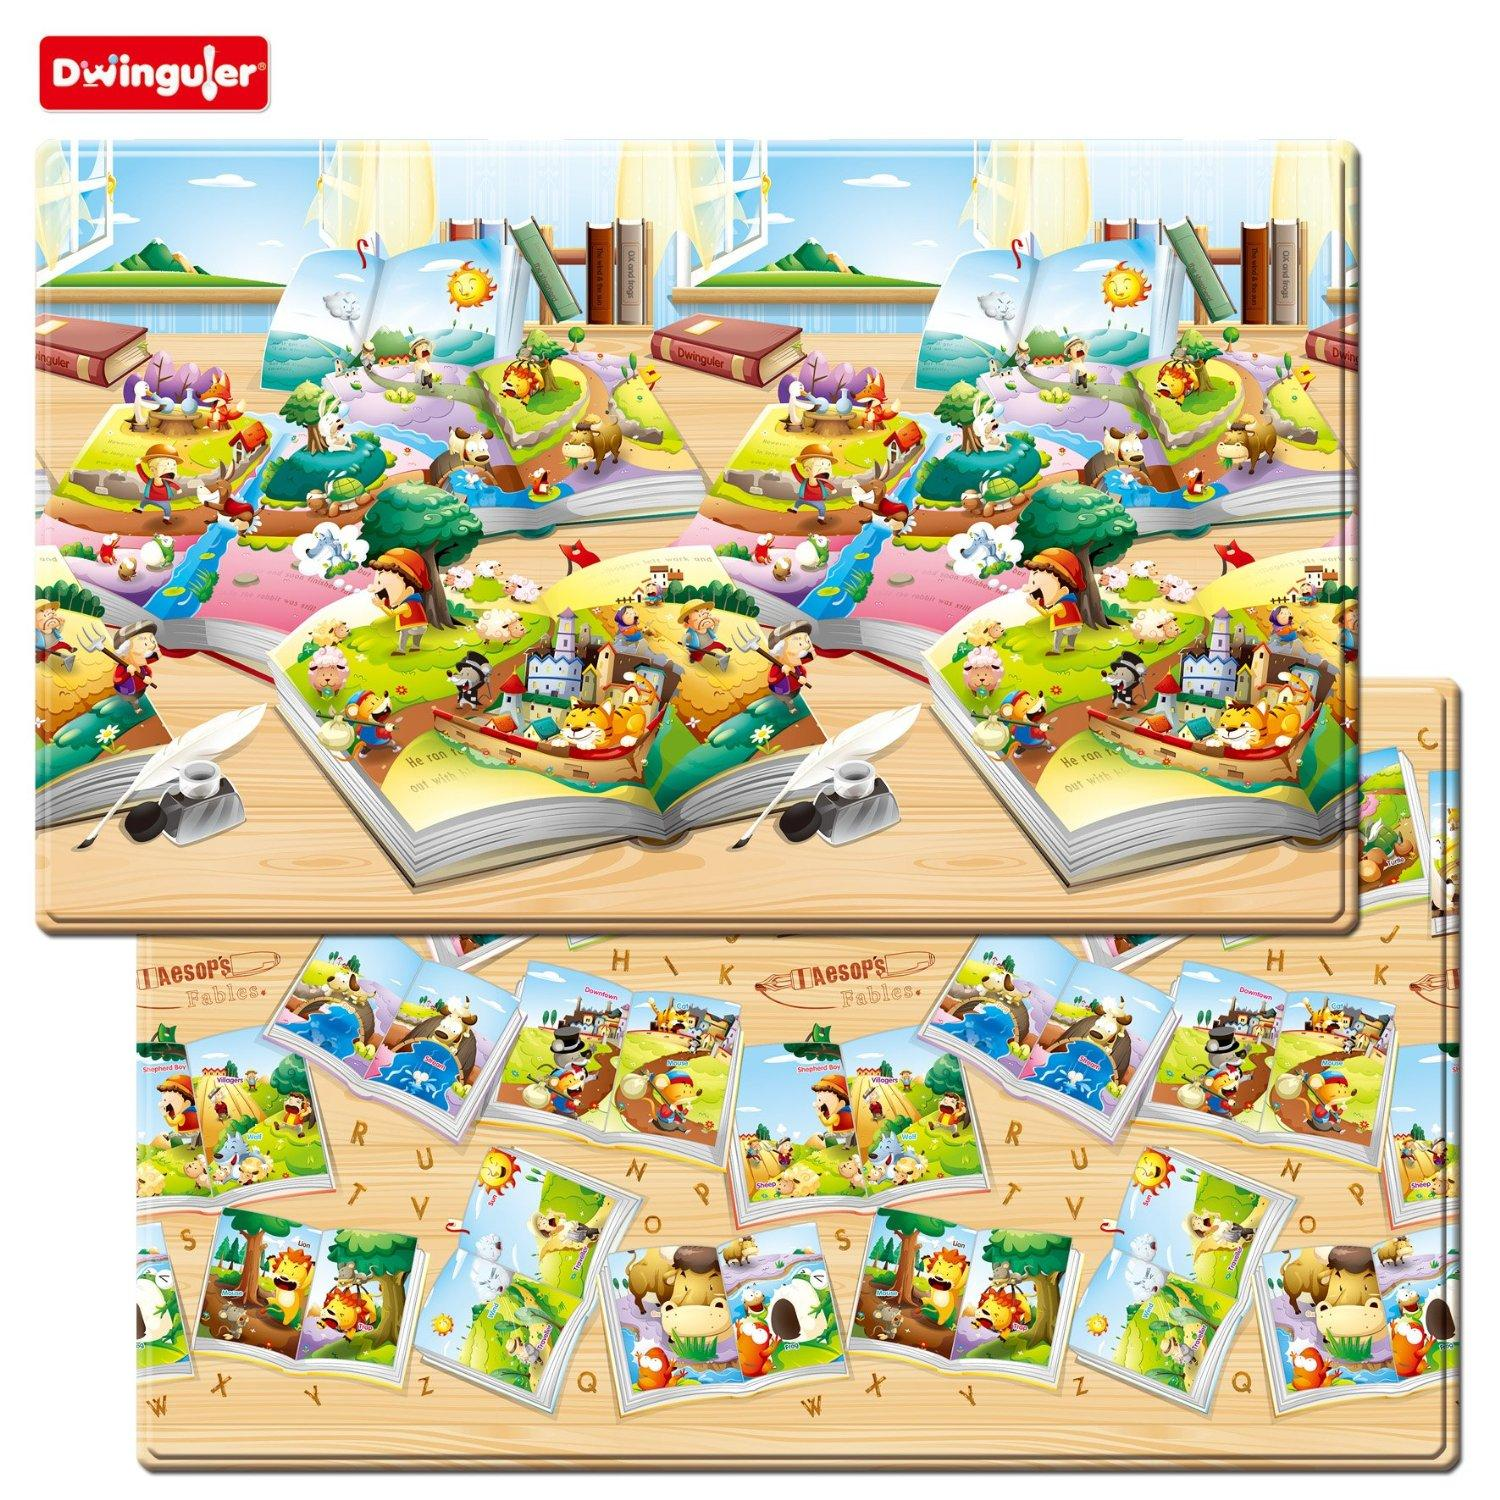 Dwinguler Augmented Reality Kids Play Mat (Large, Aesop's Fables)